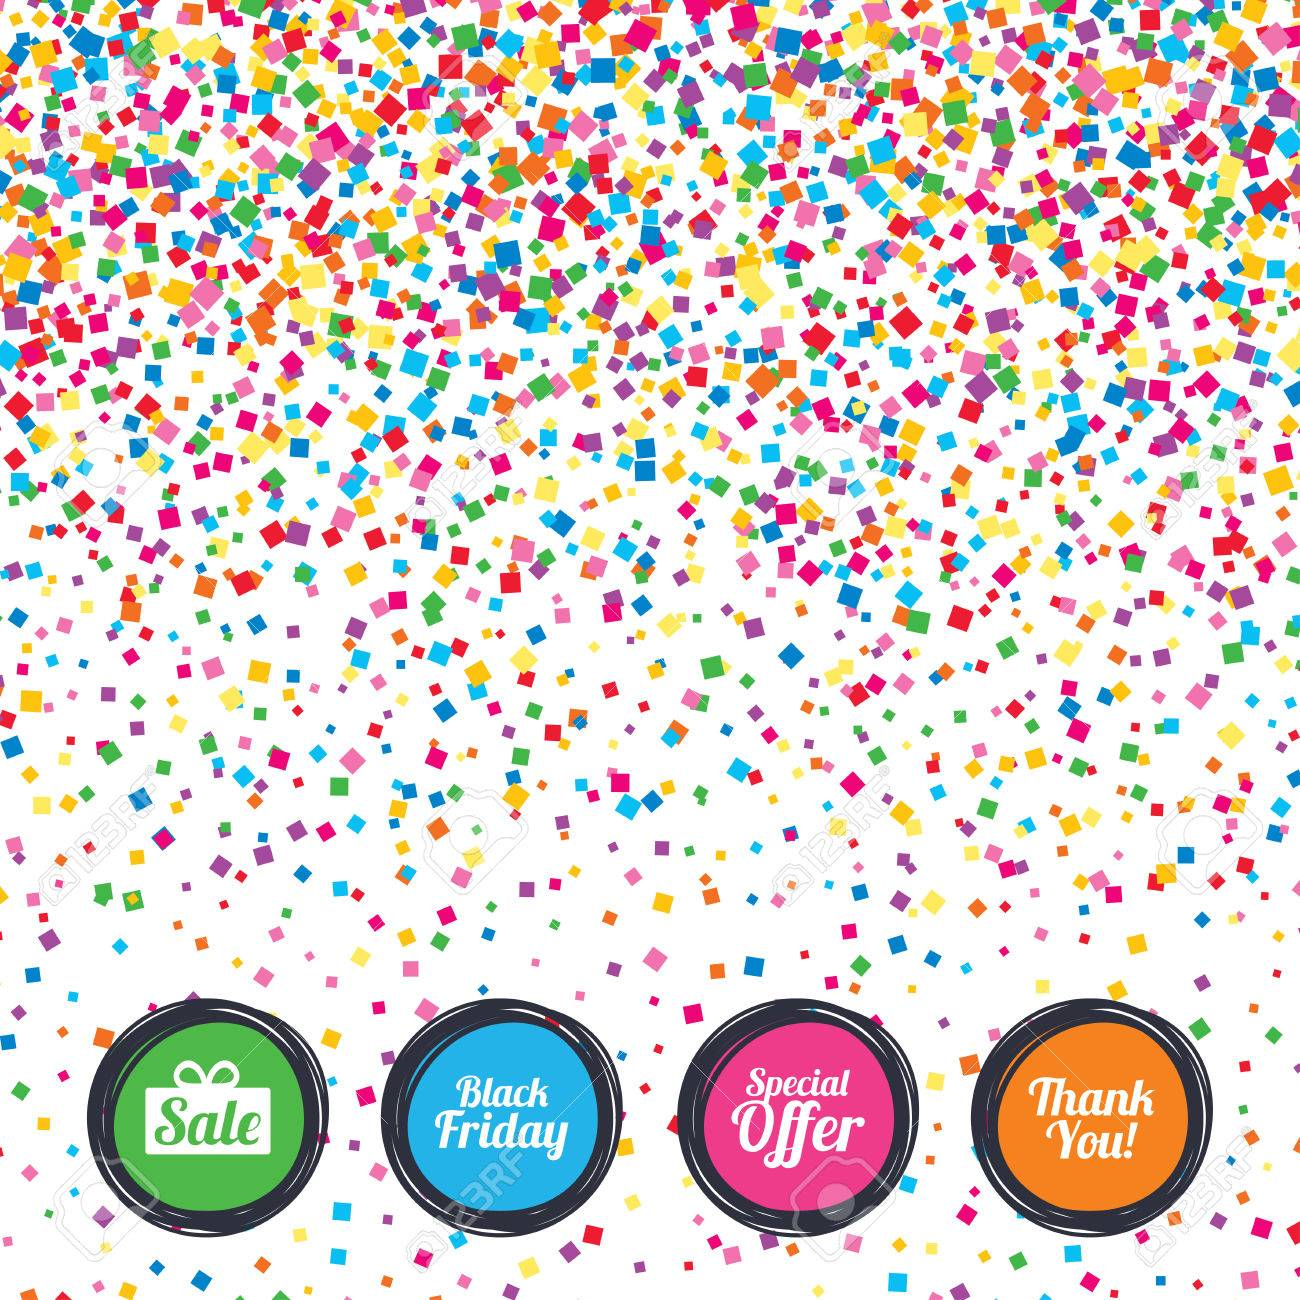 web buttons on background of confetti sale icons special offer